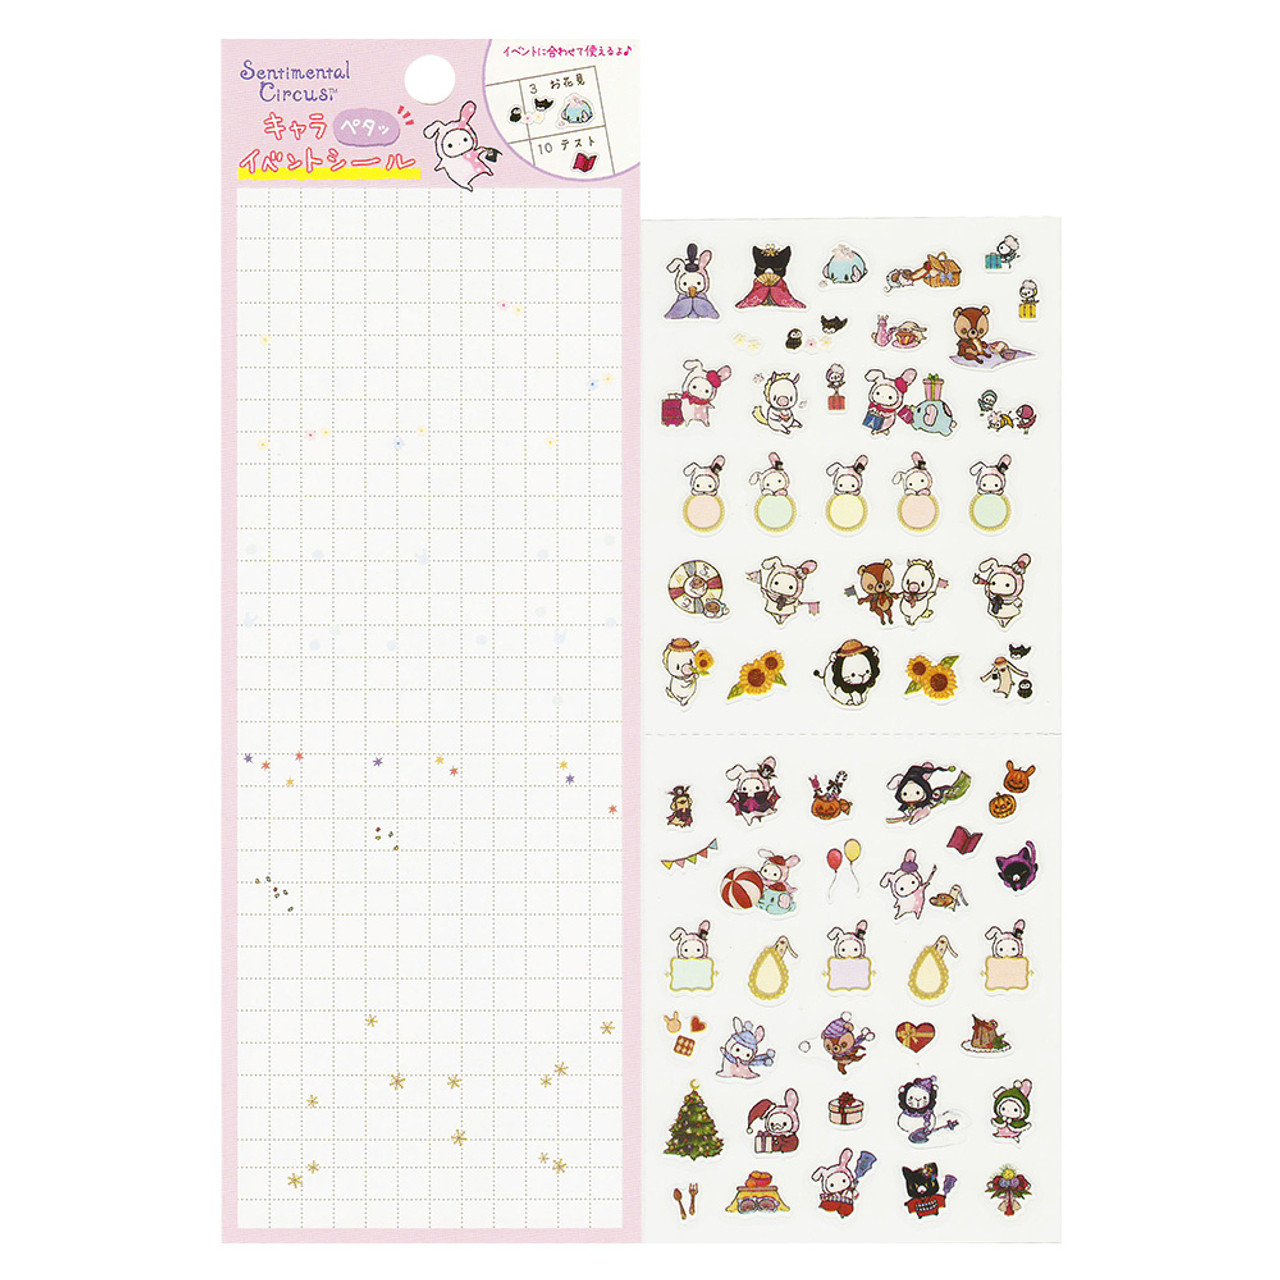 San-x Sentimental Circus Shappo Bunny Characters Events Schedule Sticker SE30605 ( Other View )